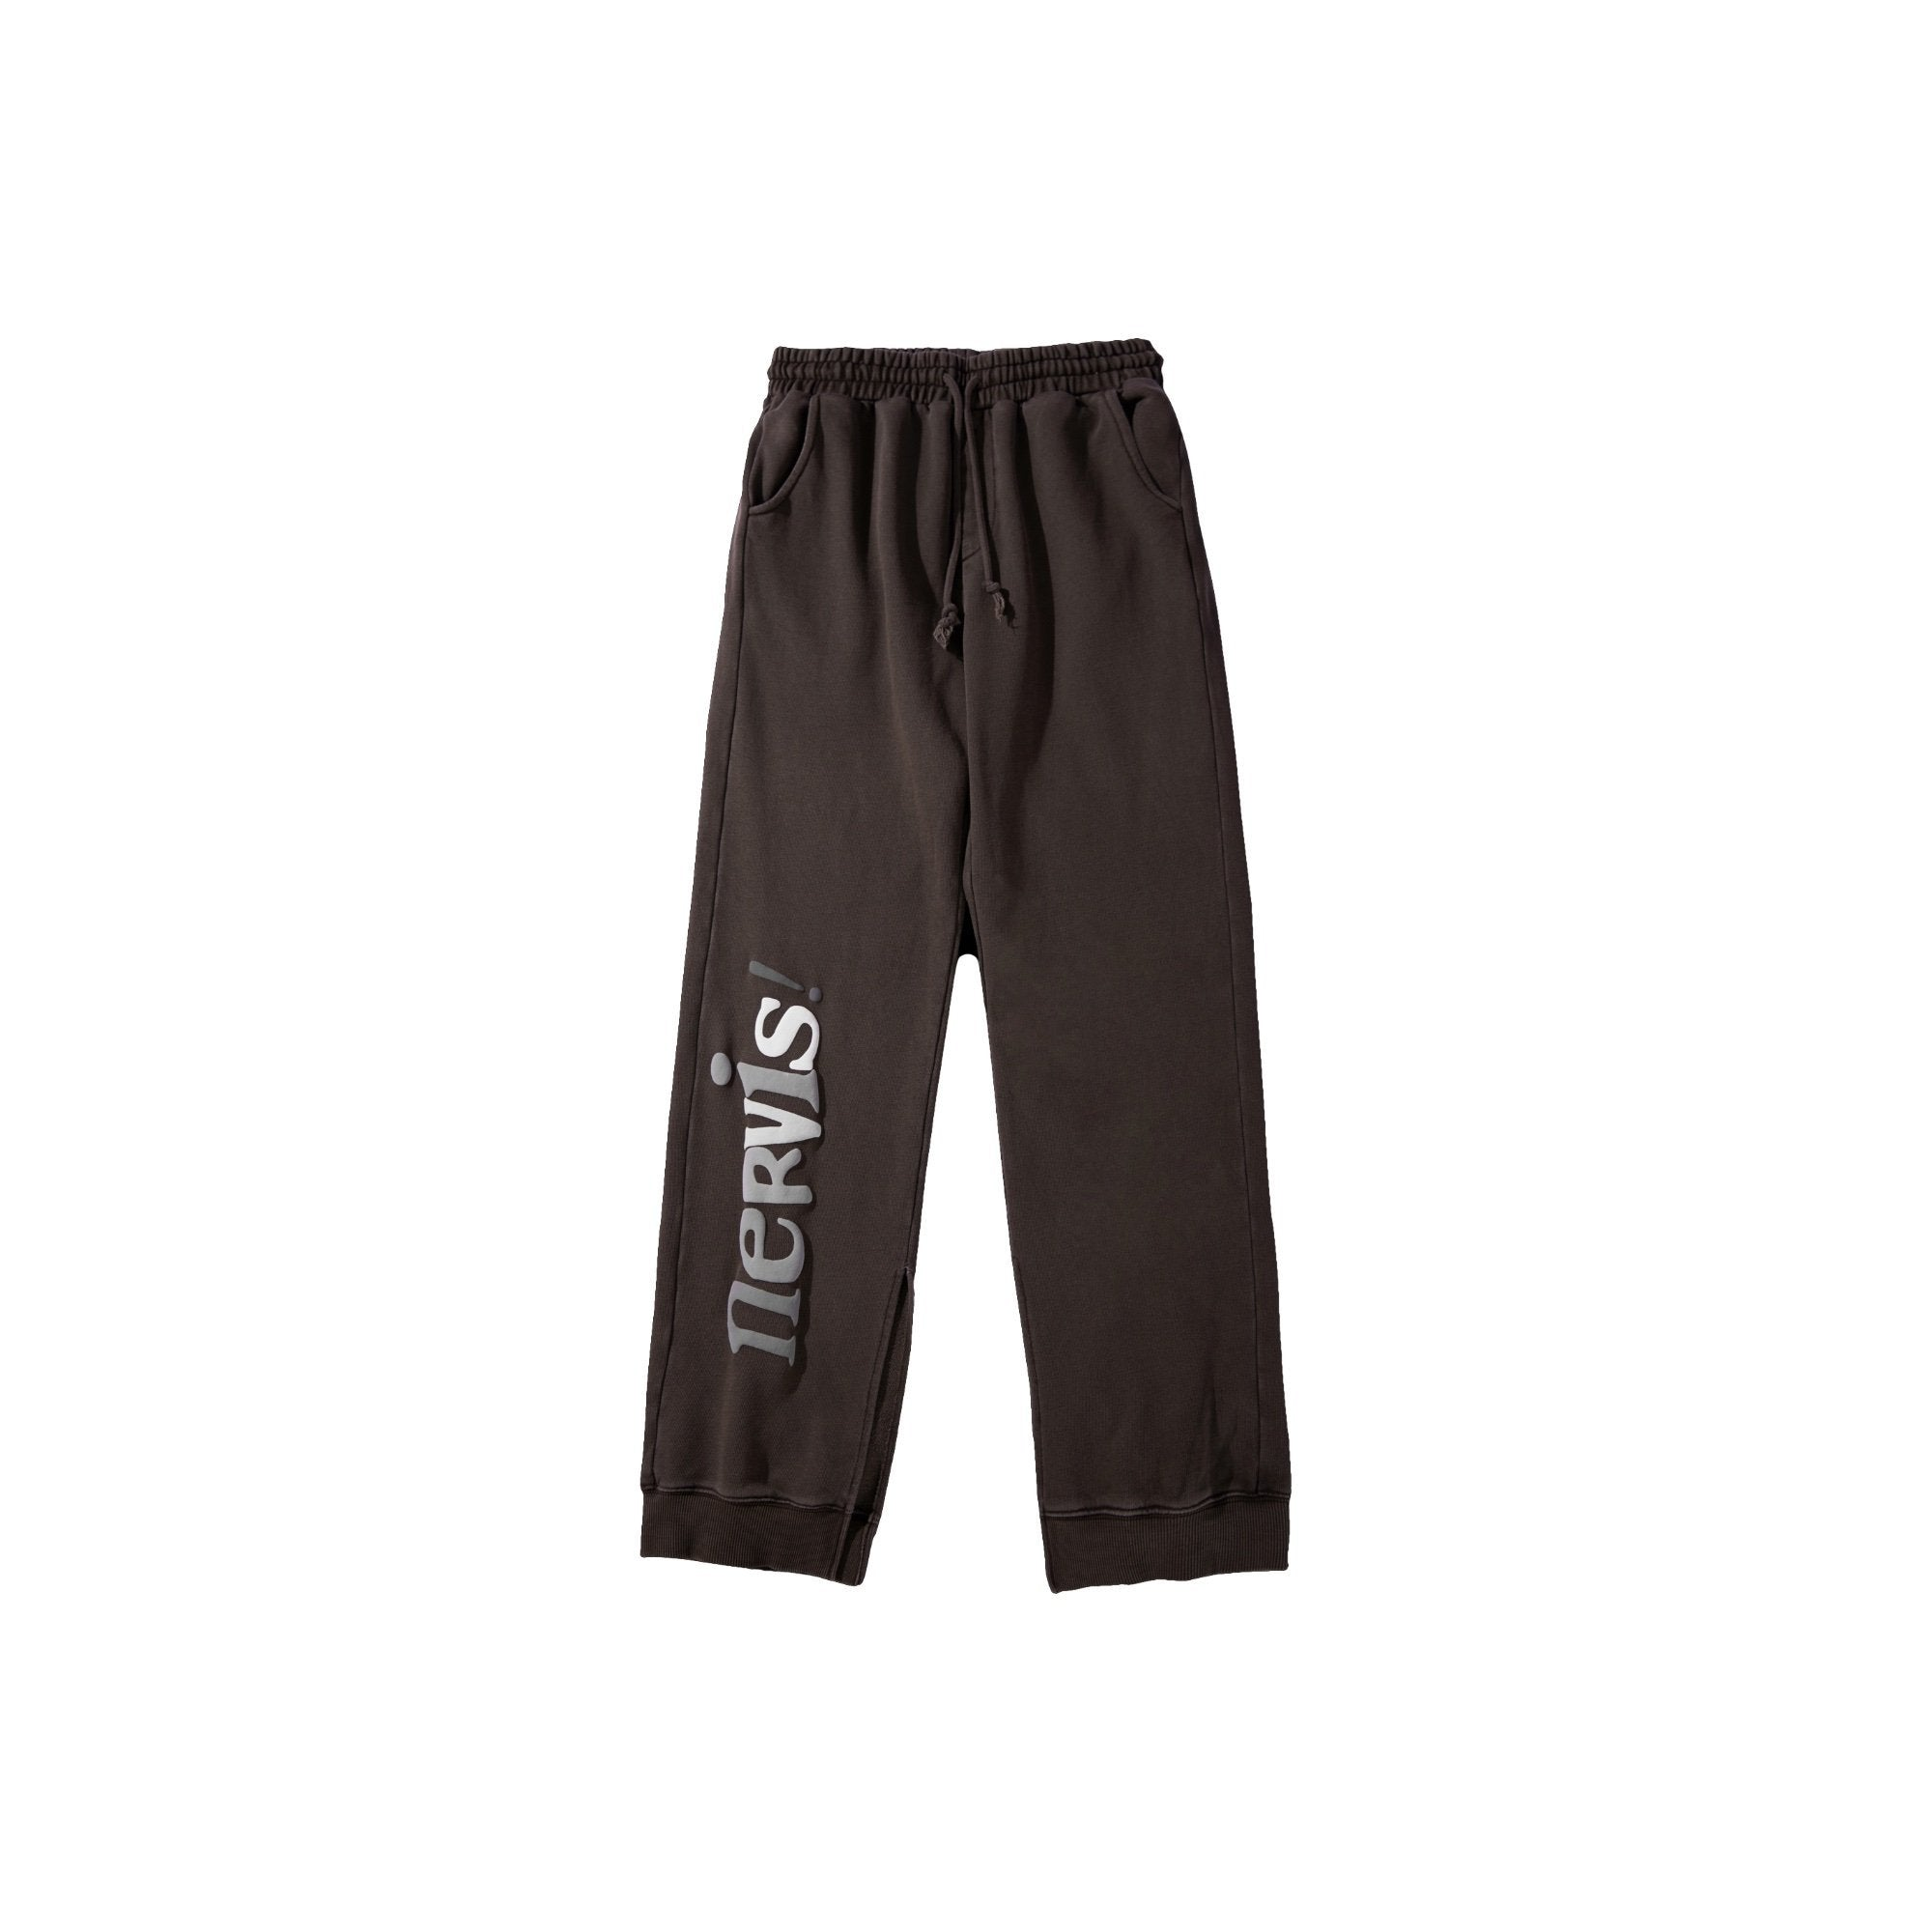 MAYHEM Nervis Brown Puff-print Lounge Pants | MADA IN CHINA